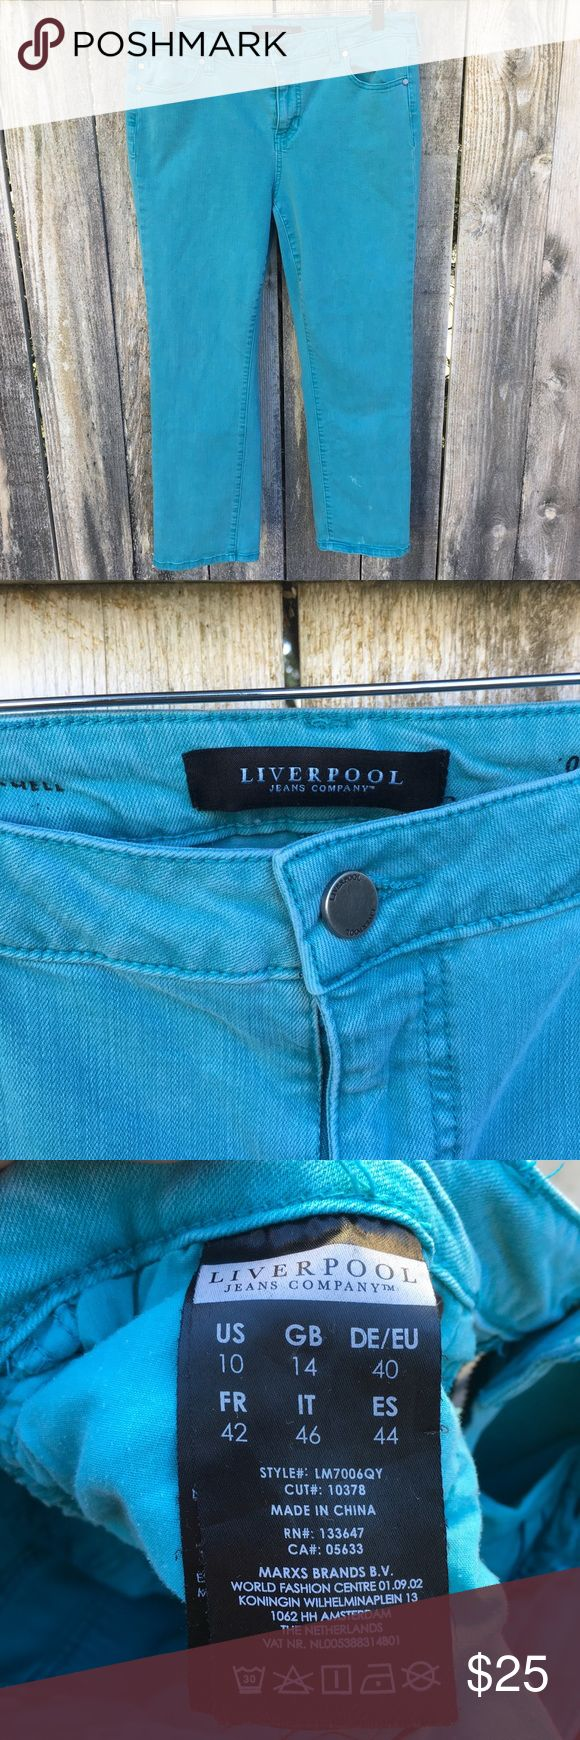 Liverpool Jeans Turquoise Pants